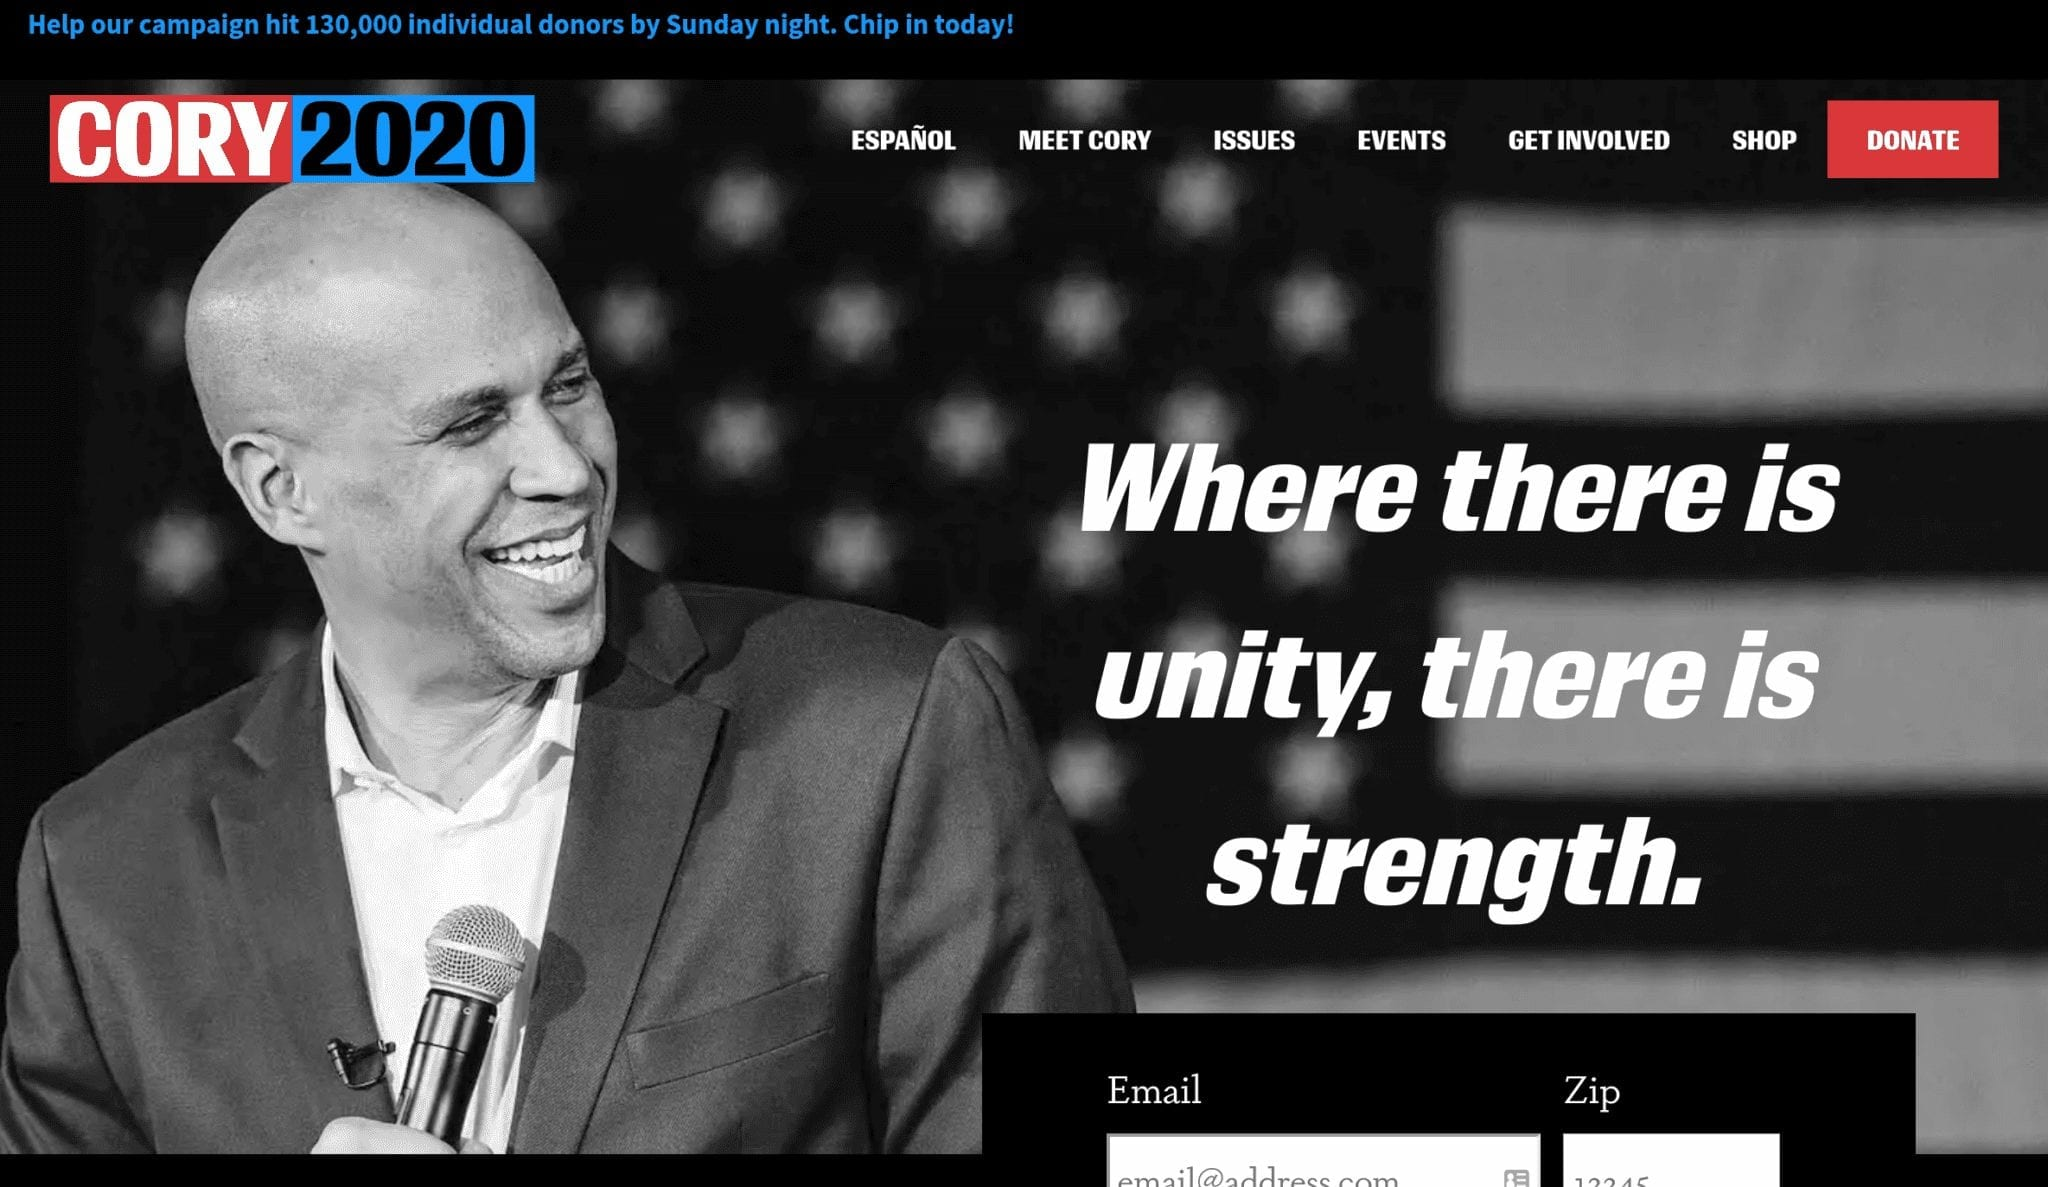 Cory Booker 2020 campaign website